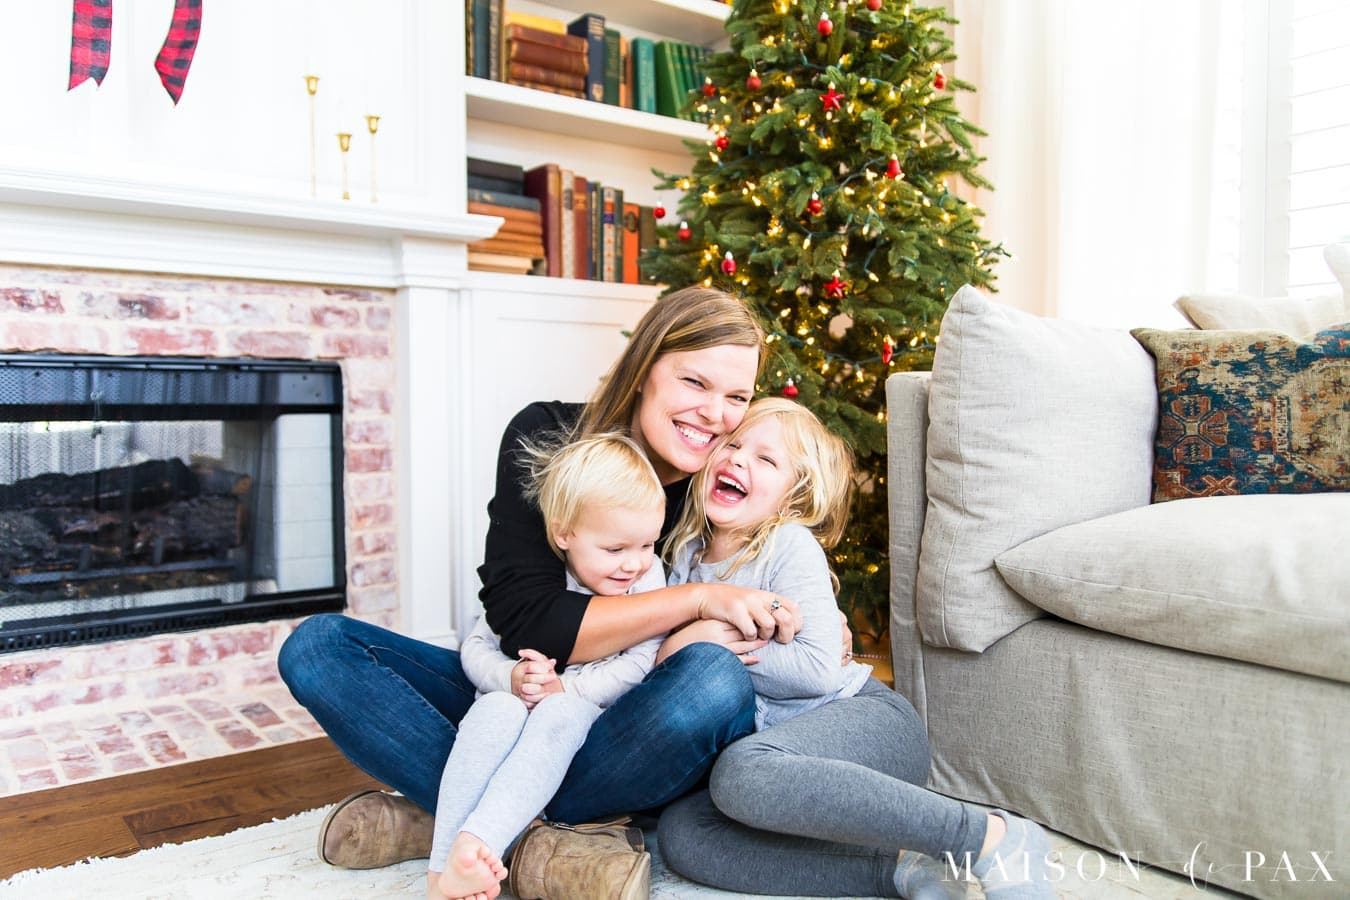 woman and daughters laughing in front of Christmas tree with white twinkle lights | Maison de Pax